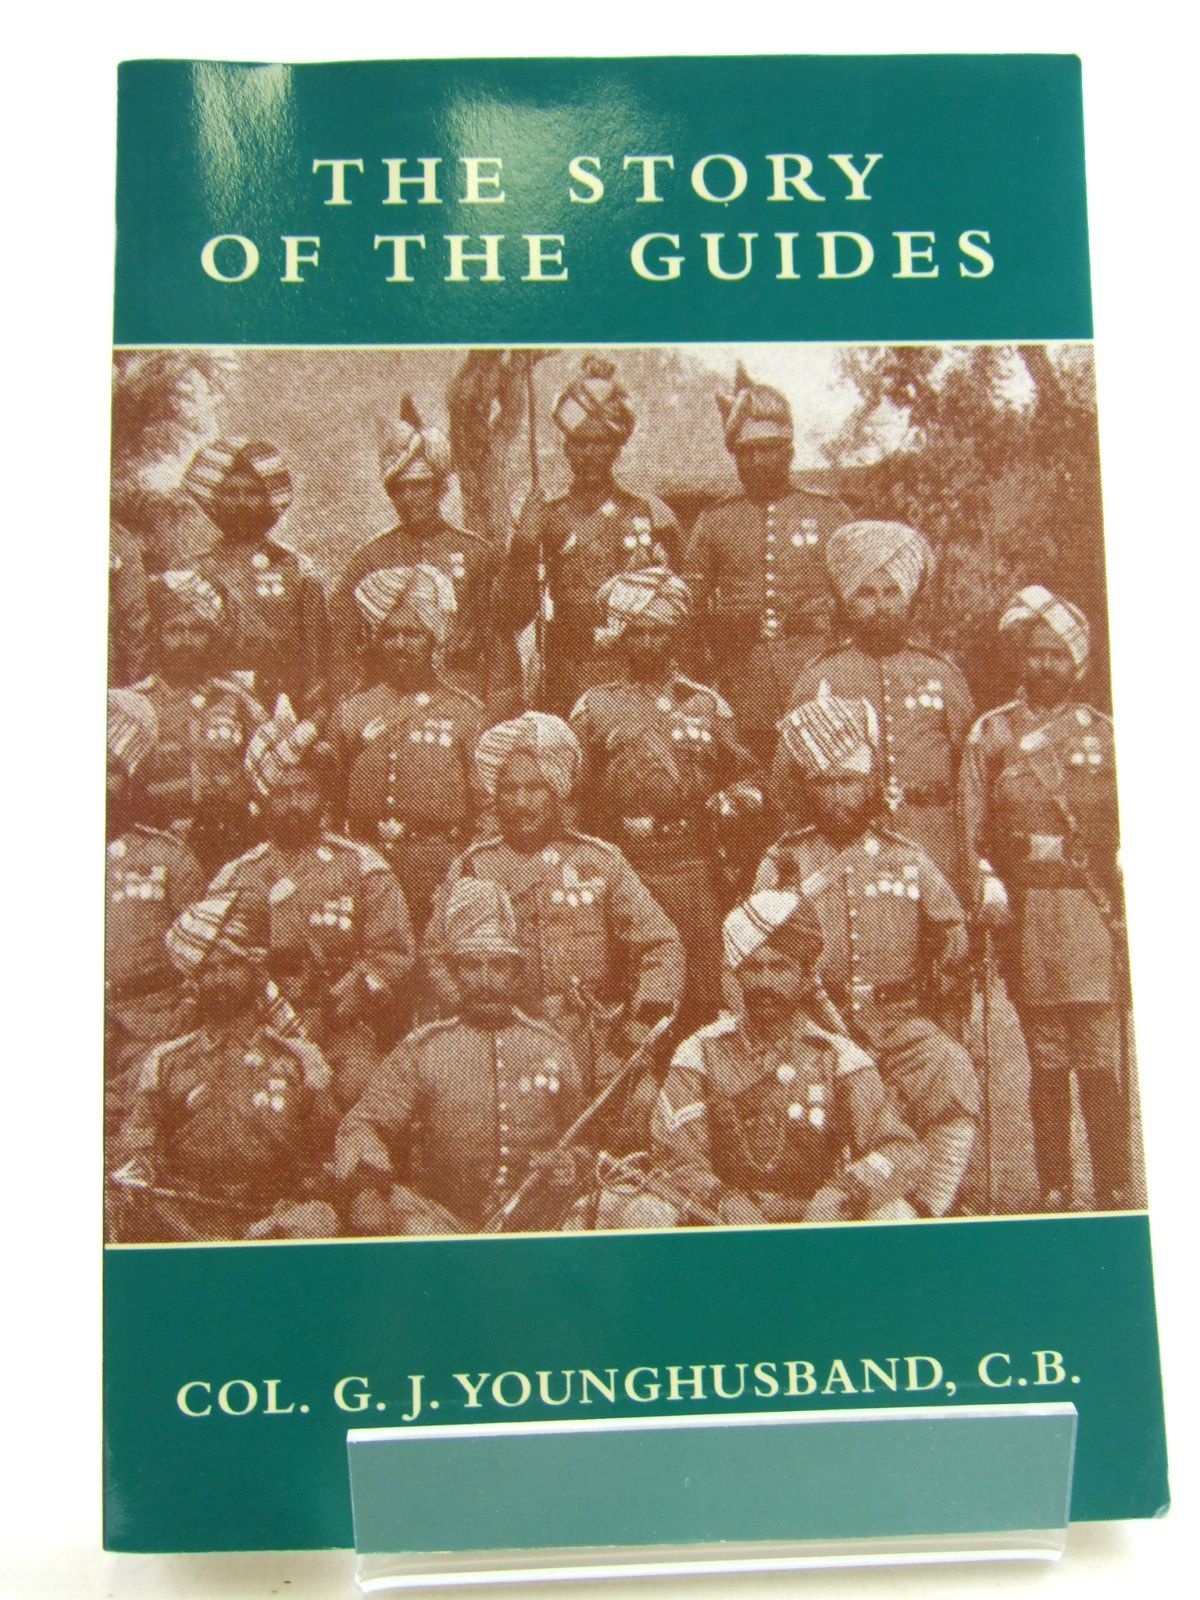 Photo of THE STORY OF THE GUIDES written by Younghusband, G.J. published by The Naval & Military Press Ltd. (STOCK CODE: 1805949)  for sale by Stella & Rose's Books